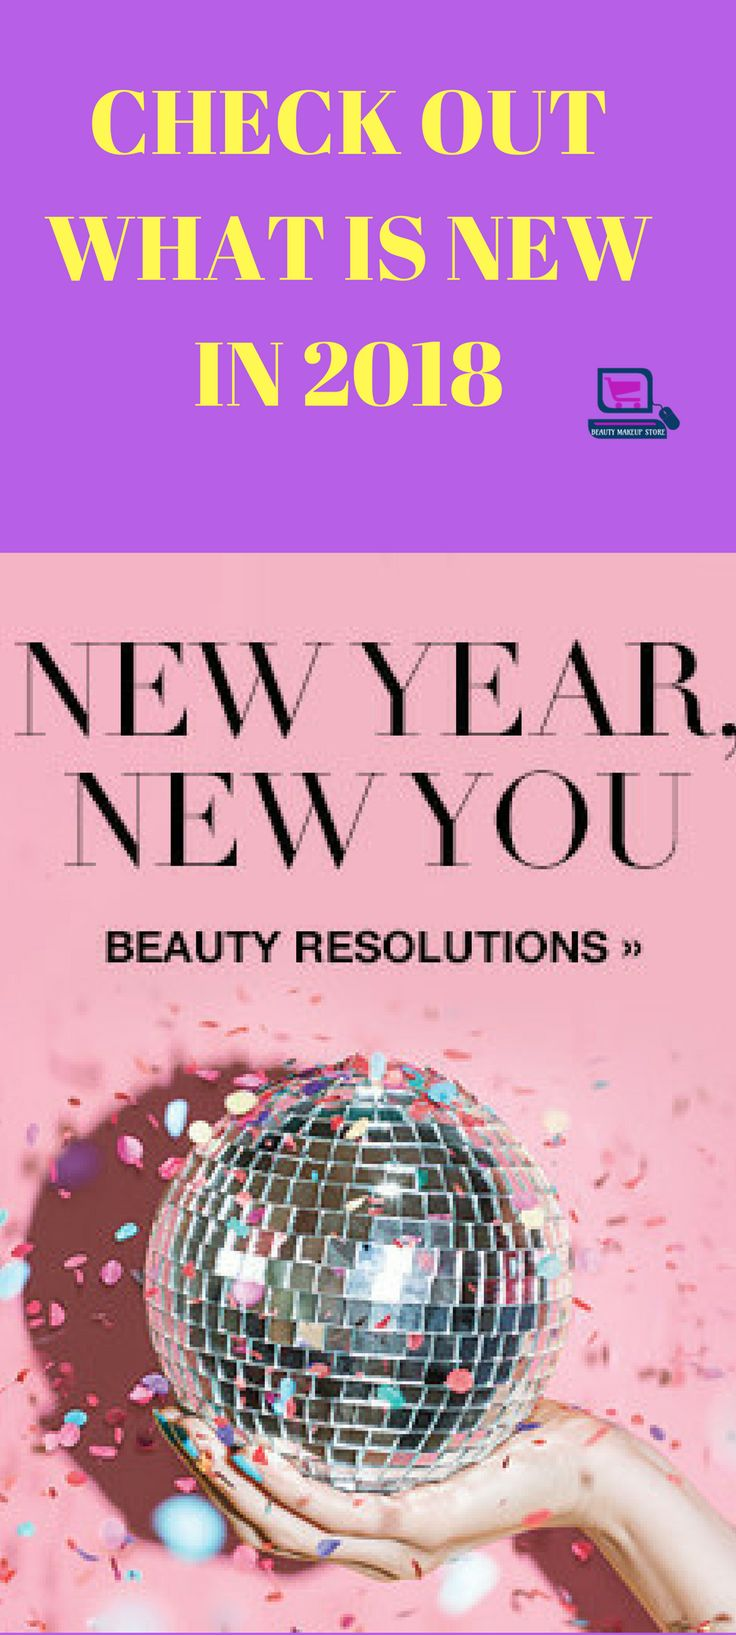 Hair and beauty tips find out what is new in 2018 with avon #beautytips #hairandbeautyrips #beautytipsf #beautytipsforface beauty tips | beauty tips for men | beauty tips for makeup | beauty tips for teens | beauty tips for skin | Beauty and Health tips | Hair and Beauty Tips | Beauty_tips | beauty tips for makeup | beauty tips | beauty tips for skin |